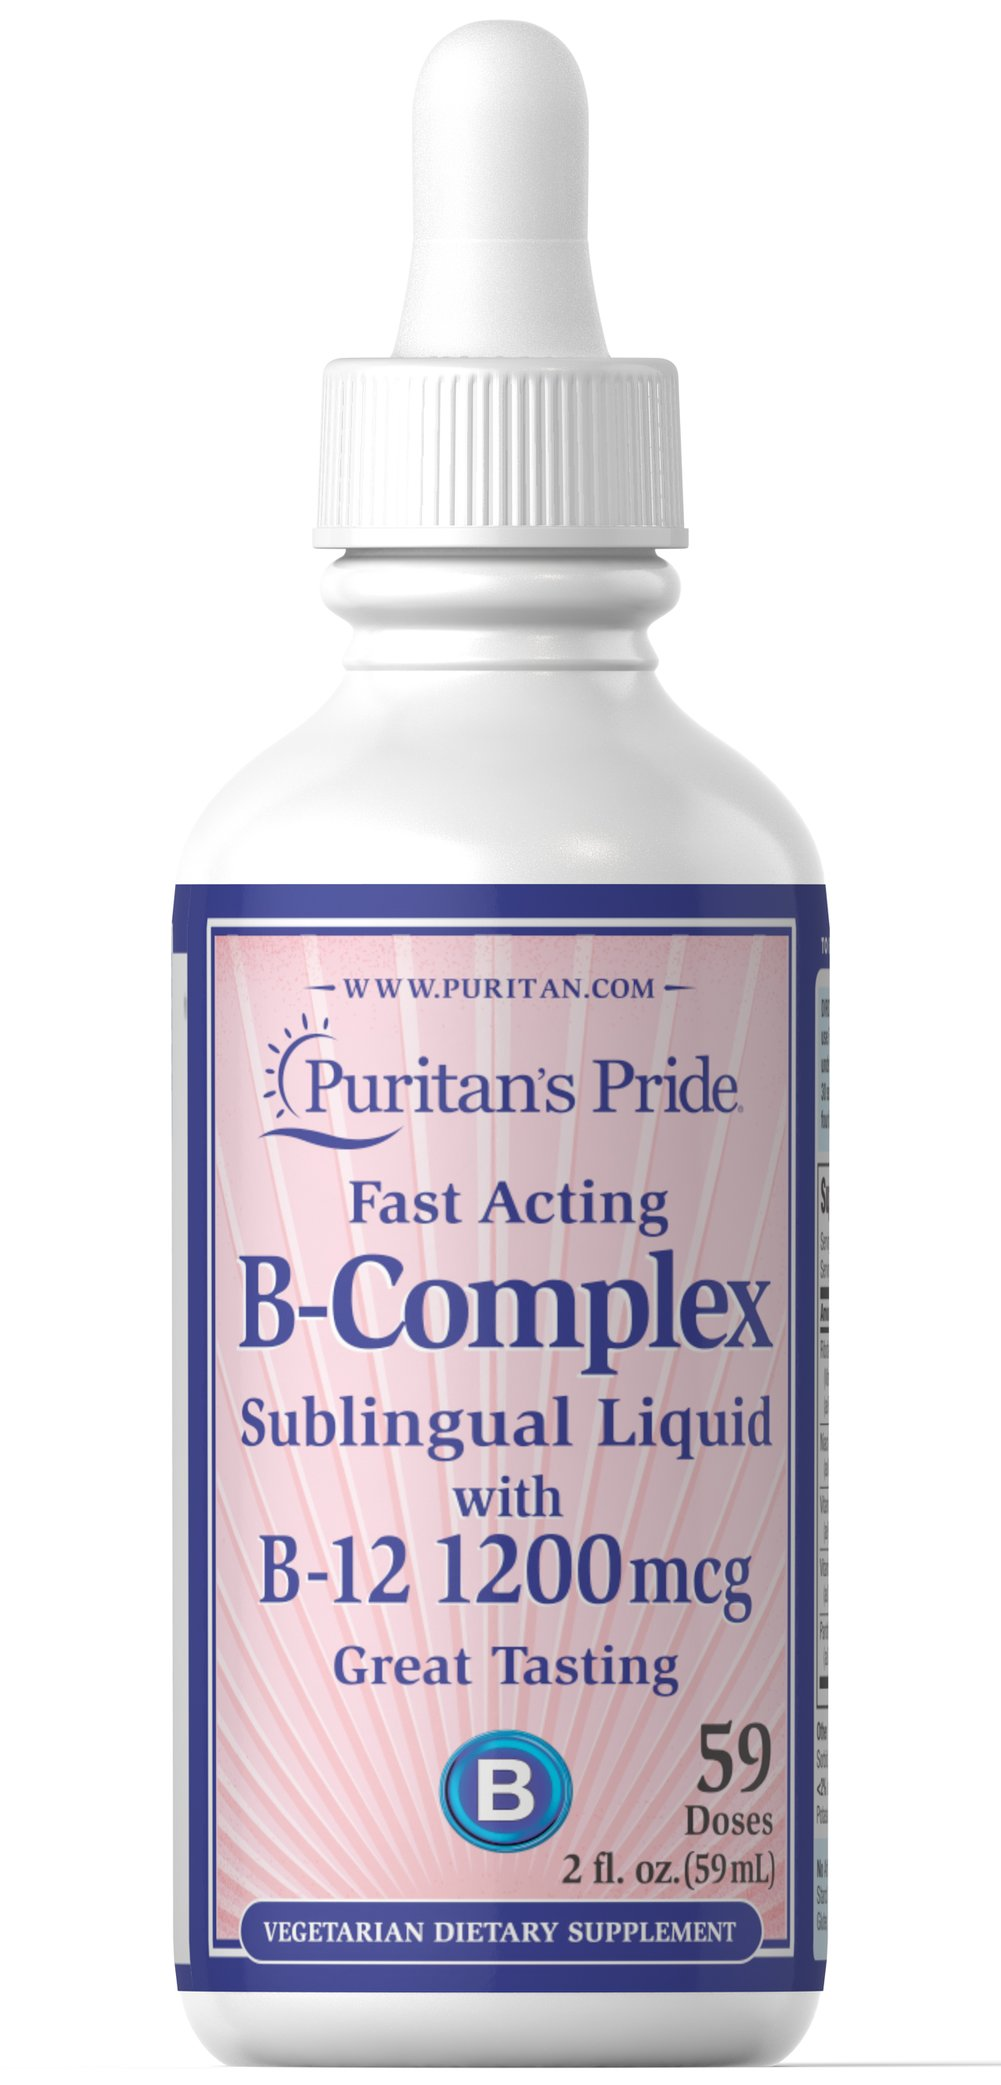 Vitamin B-Complex Sublingual Liquid with Vitamin B-12 <p>This Vitamin B-Complex Sublingual Liquid with Vitamin B-12 provides an excellent source of B-Complex vitamins to help safeguard a sufficient daily intake. The B-Complex is essential for the maintenance of healthy nervous tissue.** The B Vitamins play a role in energy metabolism in the body.** There are 59 doses per 2 fl. oz.</p> 2 fl oz Liquid  $6.99